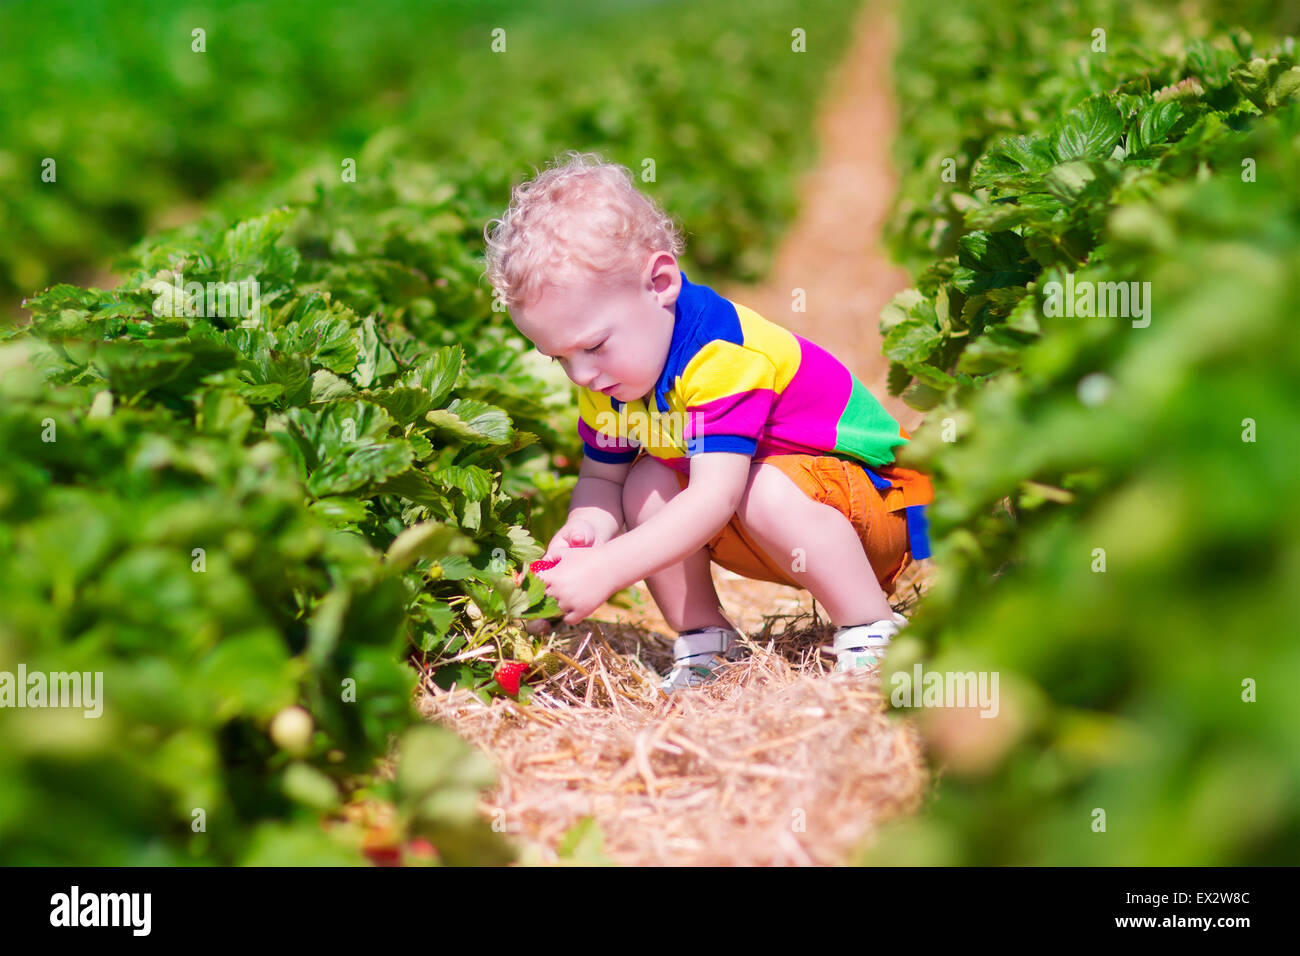 Child picking strawberries. Kids pick fresh fruit on organic strawberry farm. Children gardening and harvesting. - Stock Image